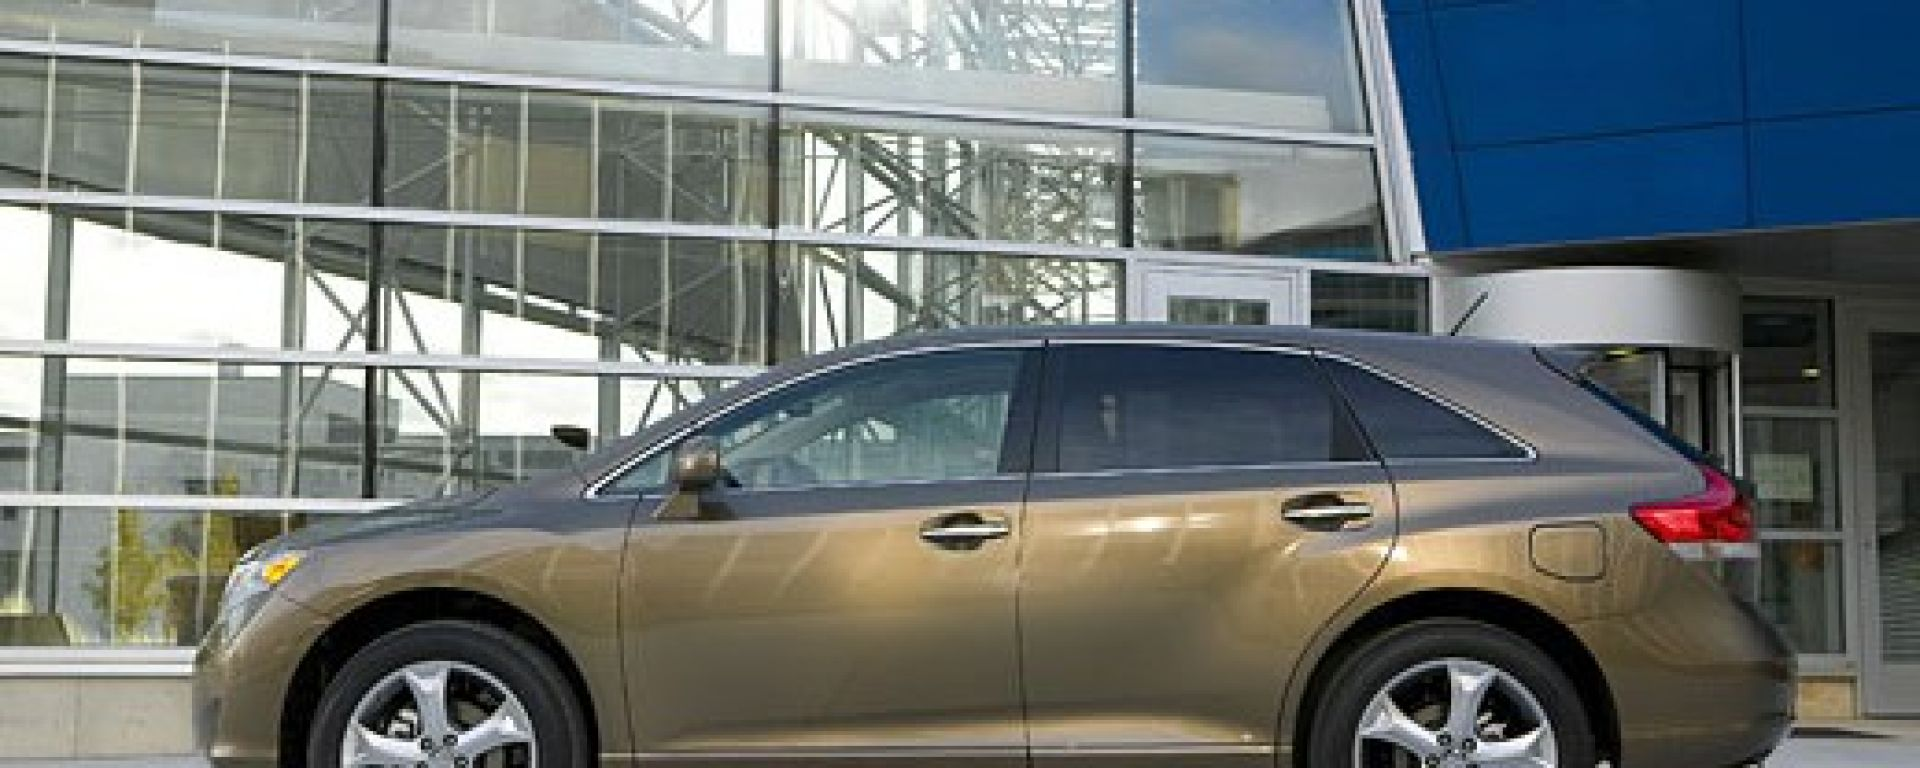 Toyota Venza - gallery